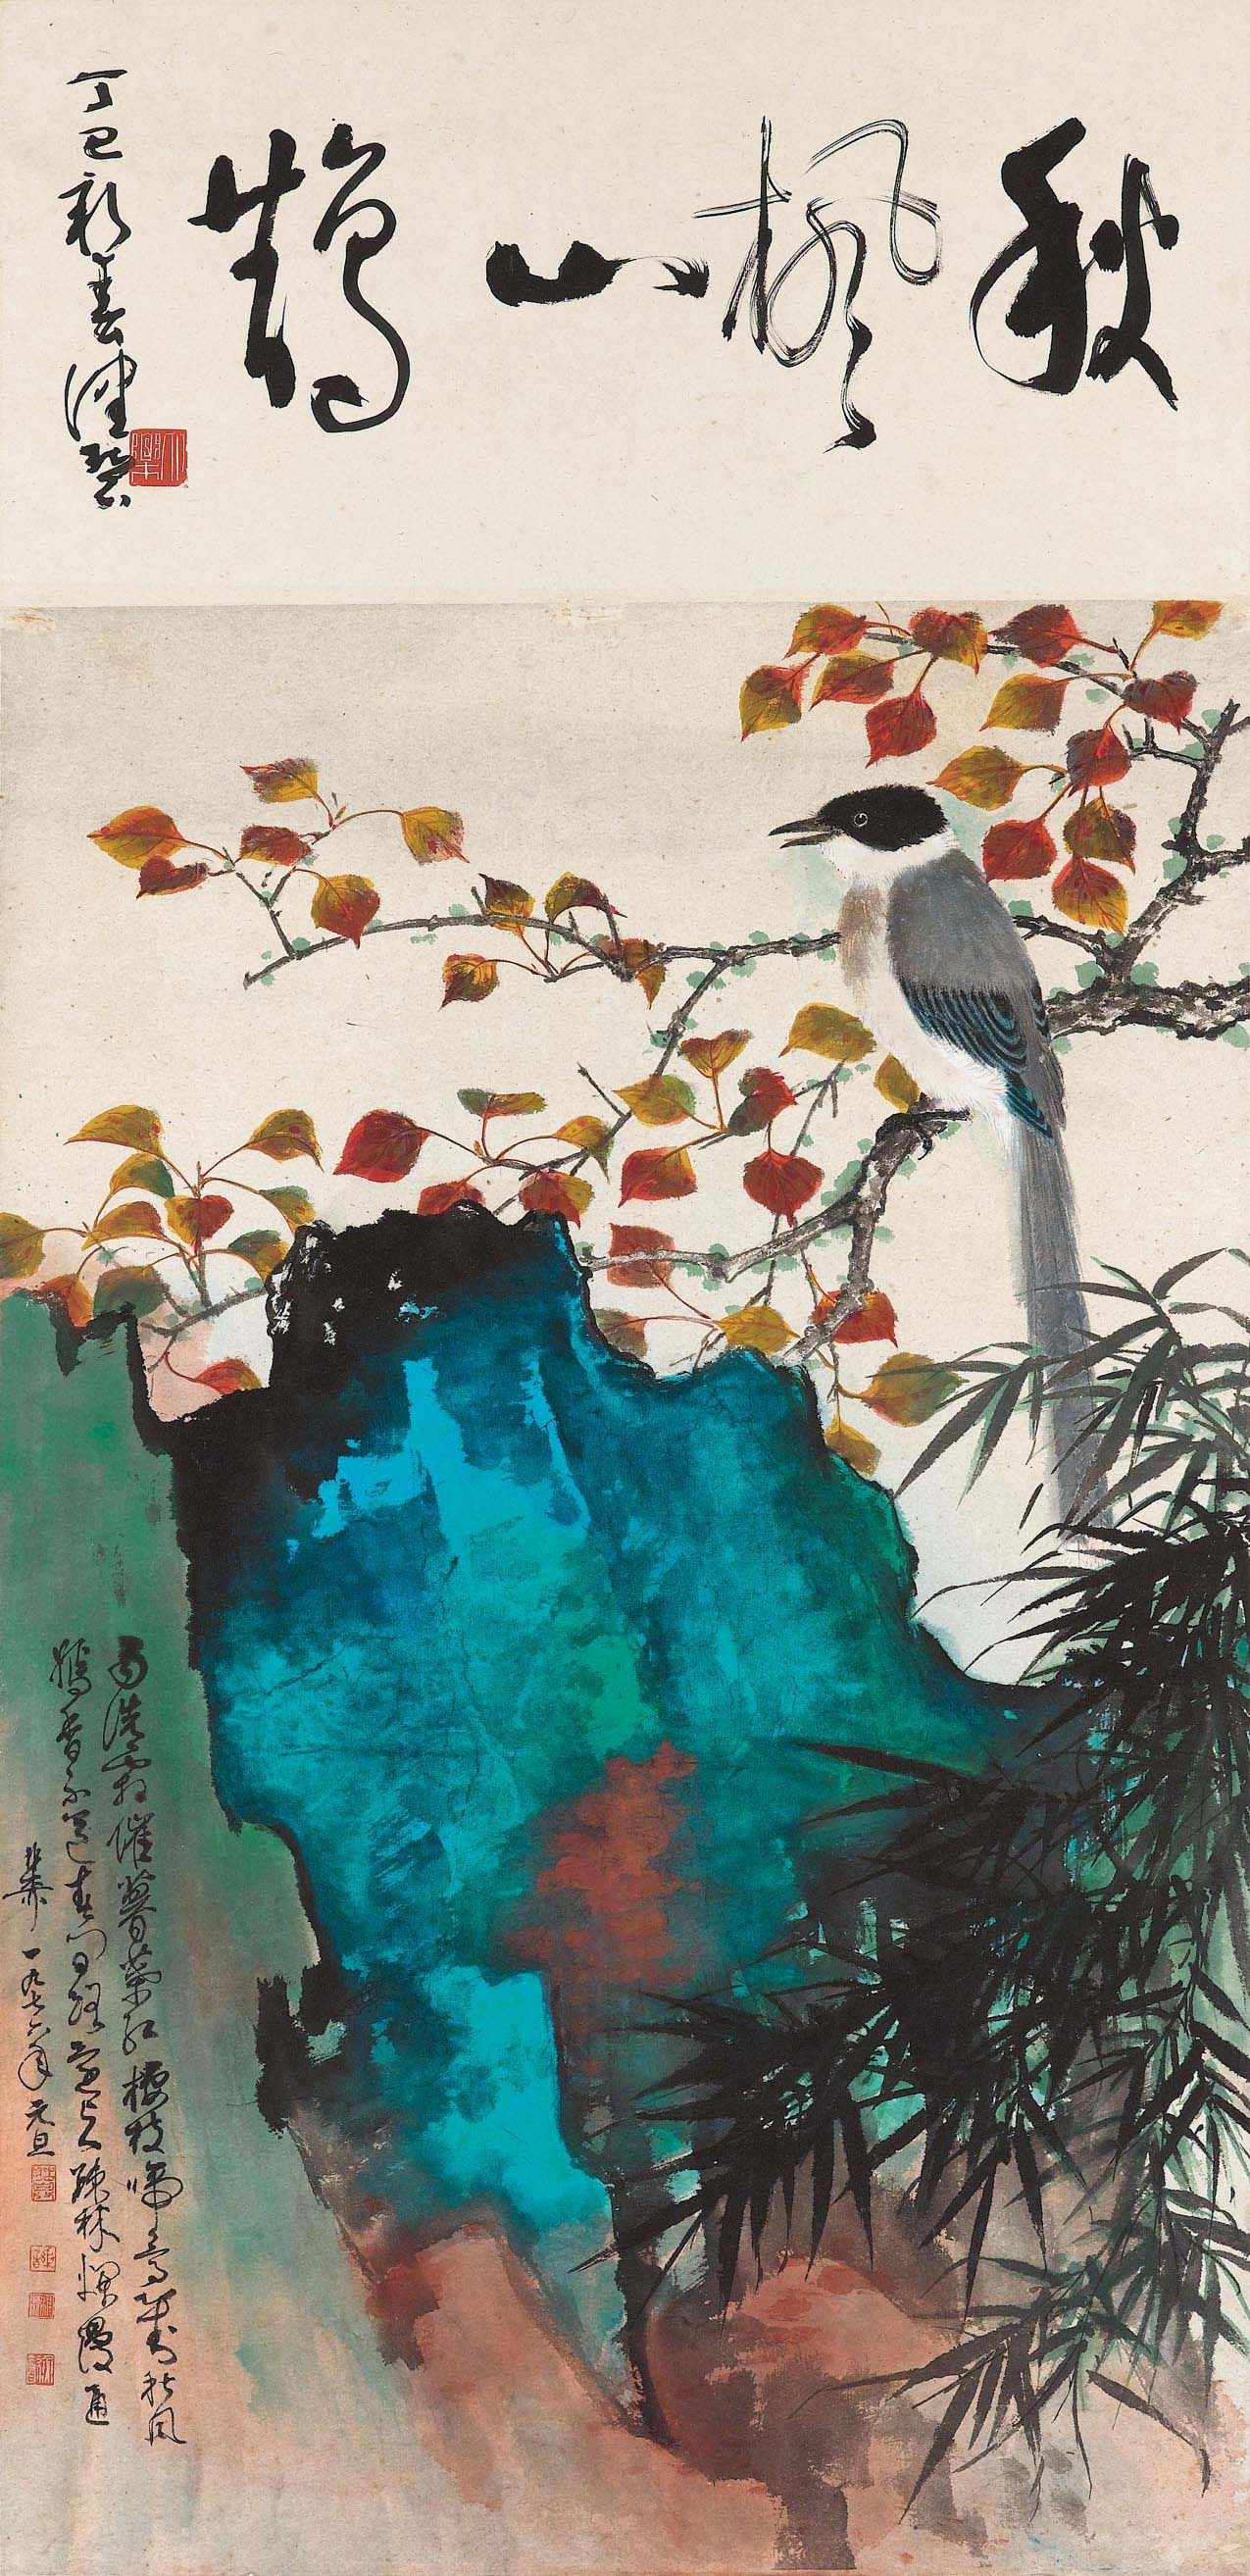 Bird and Autumn Leaves